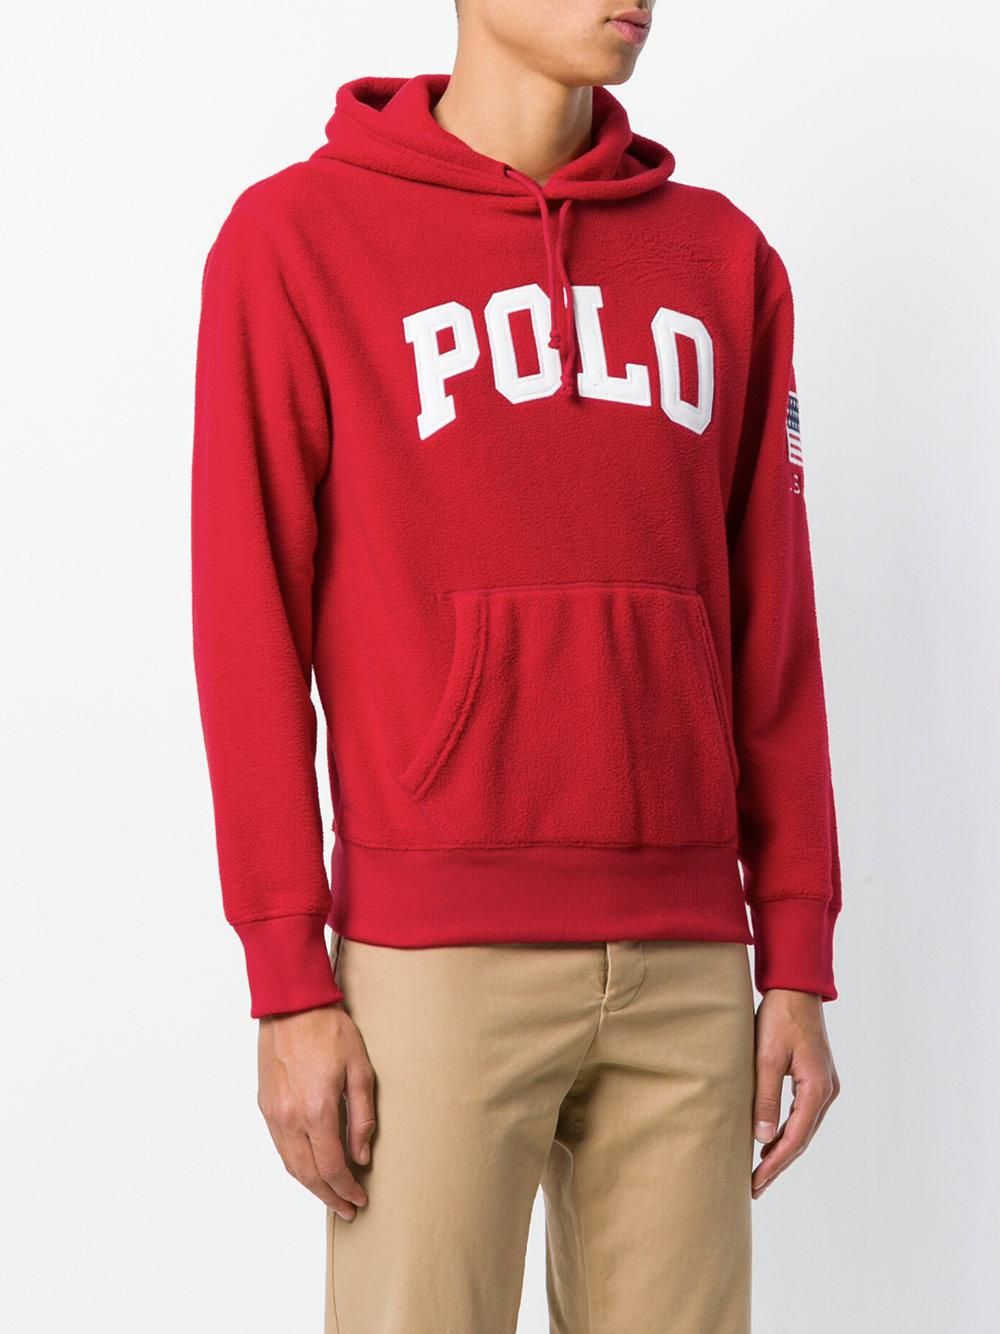 lyst polo ralph lauren branded hoodie in red for men. Black Bedroom Furniture Sets. Home Design Ideas